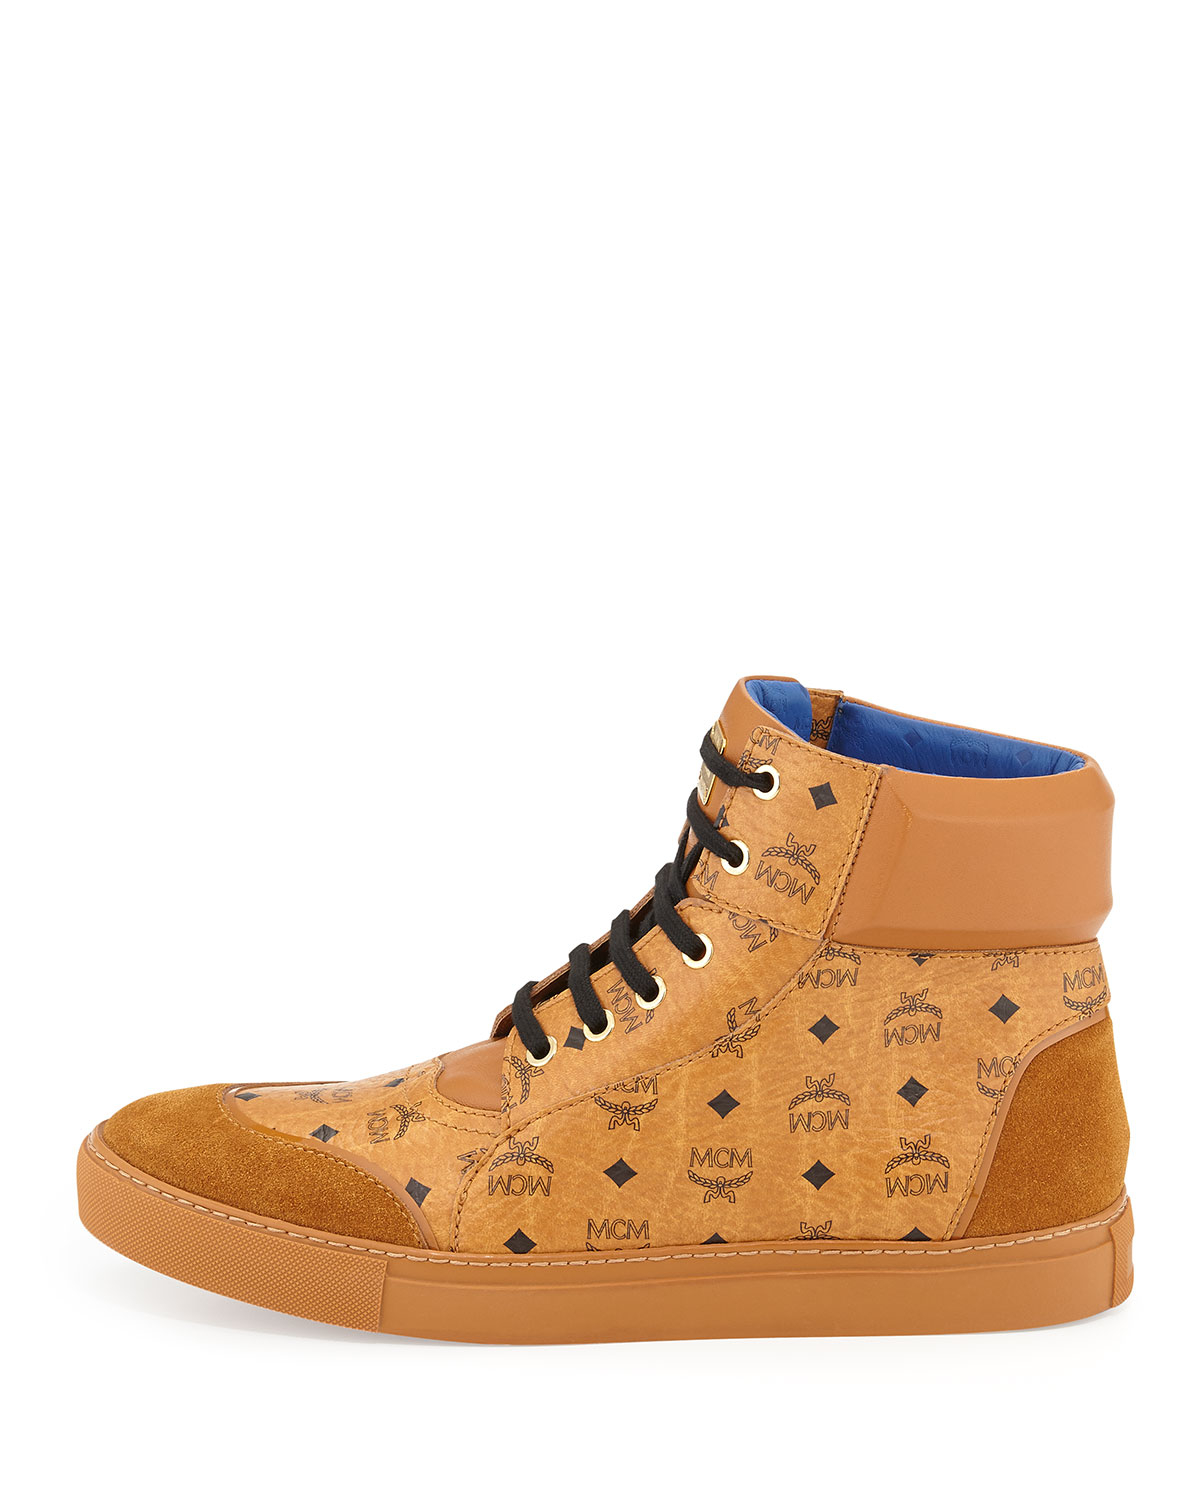 mcm classic high top sneakers in orange for lyst